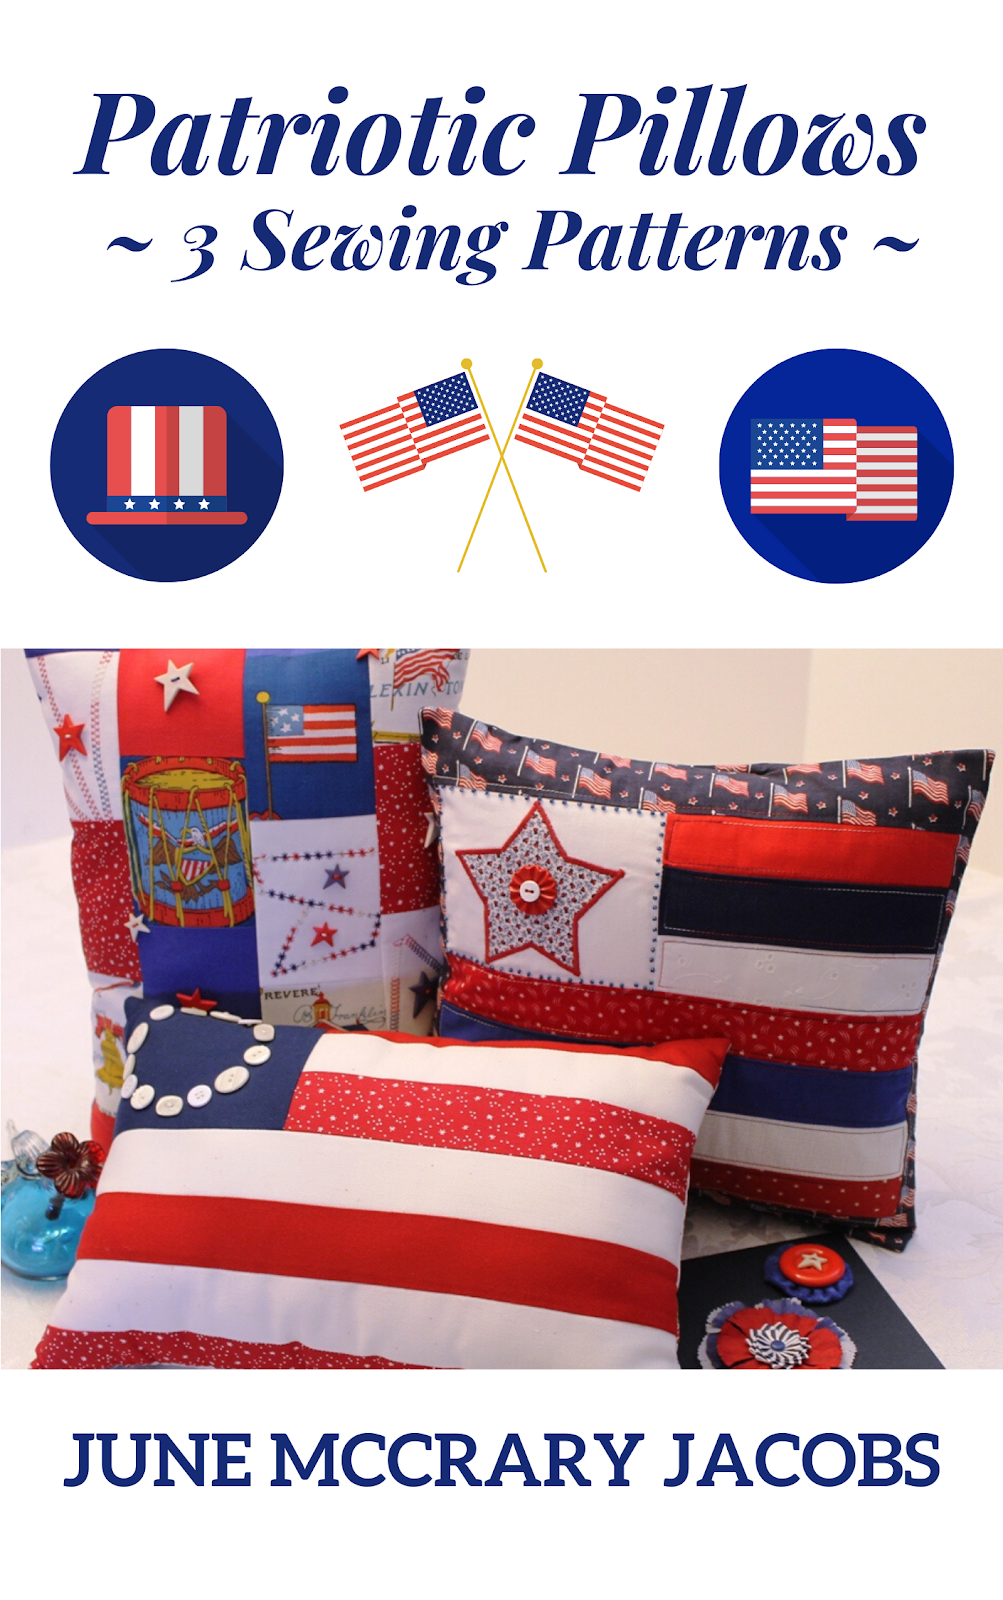 FIND 'PATRIOTIC PILLOWS:  3 SEWING PATTERNS' ON AMAZON.